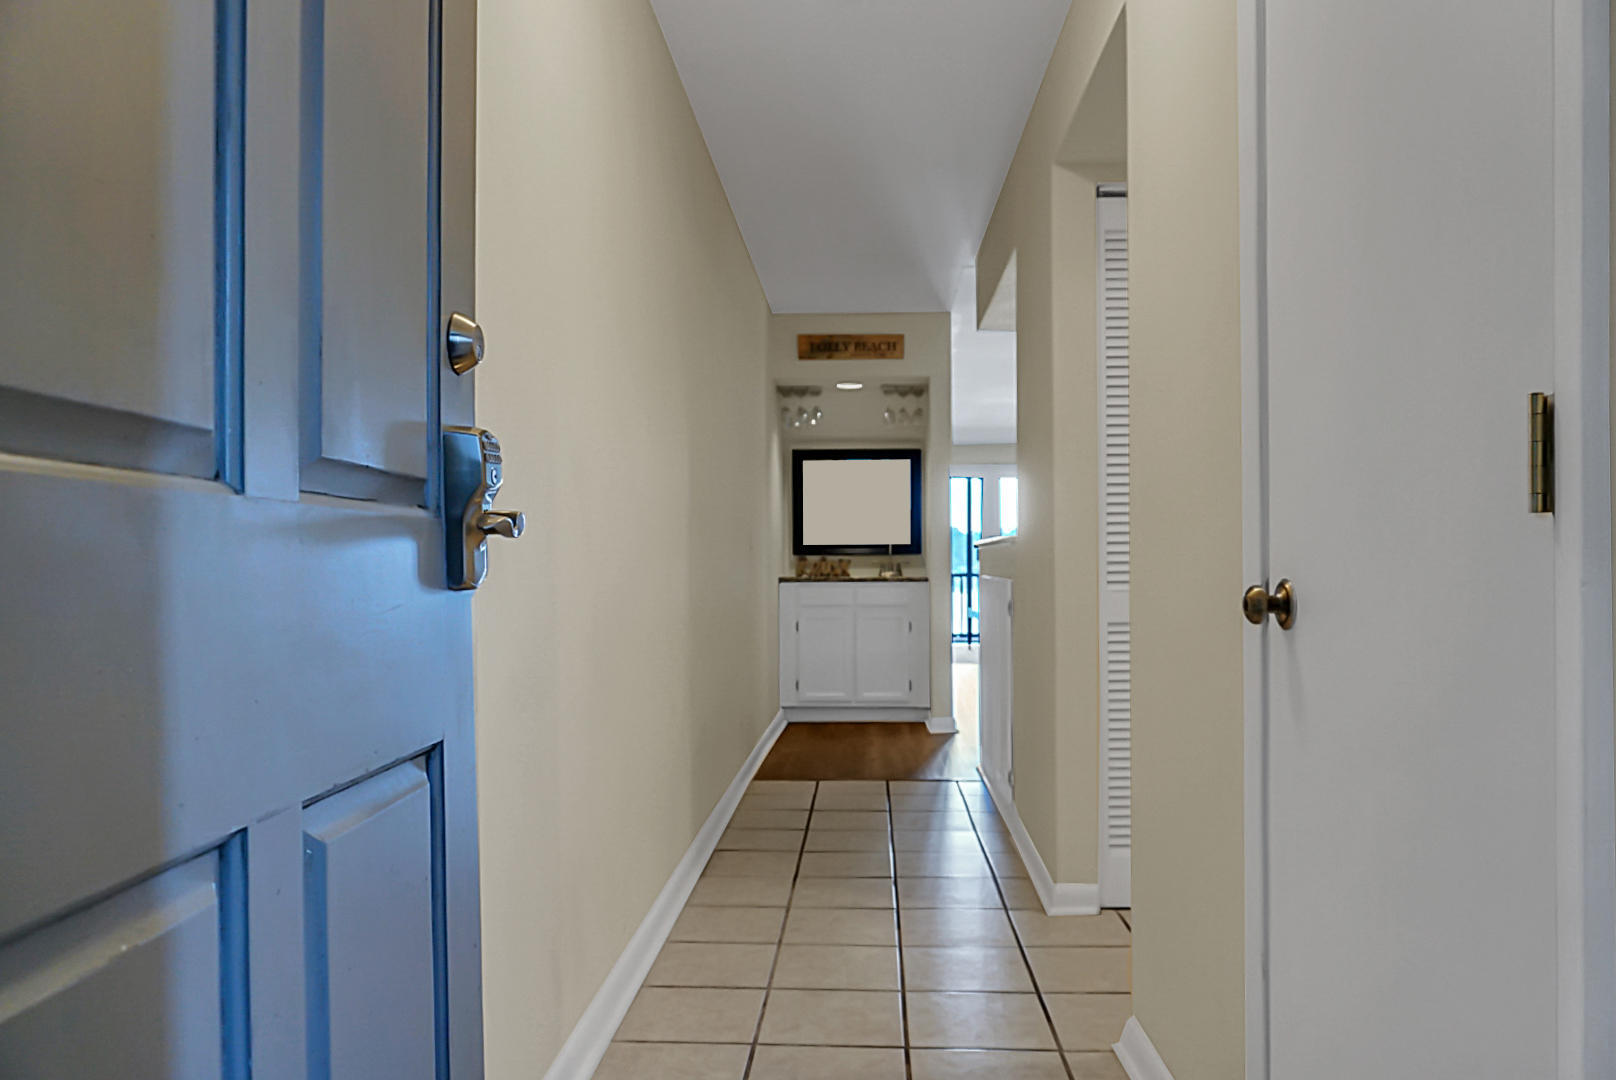 Mariners Cay Homes For Sale - 45 Mariners Cay, Folly Beach, SC - 50